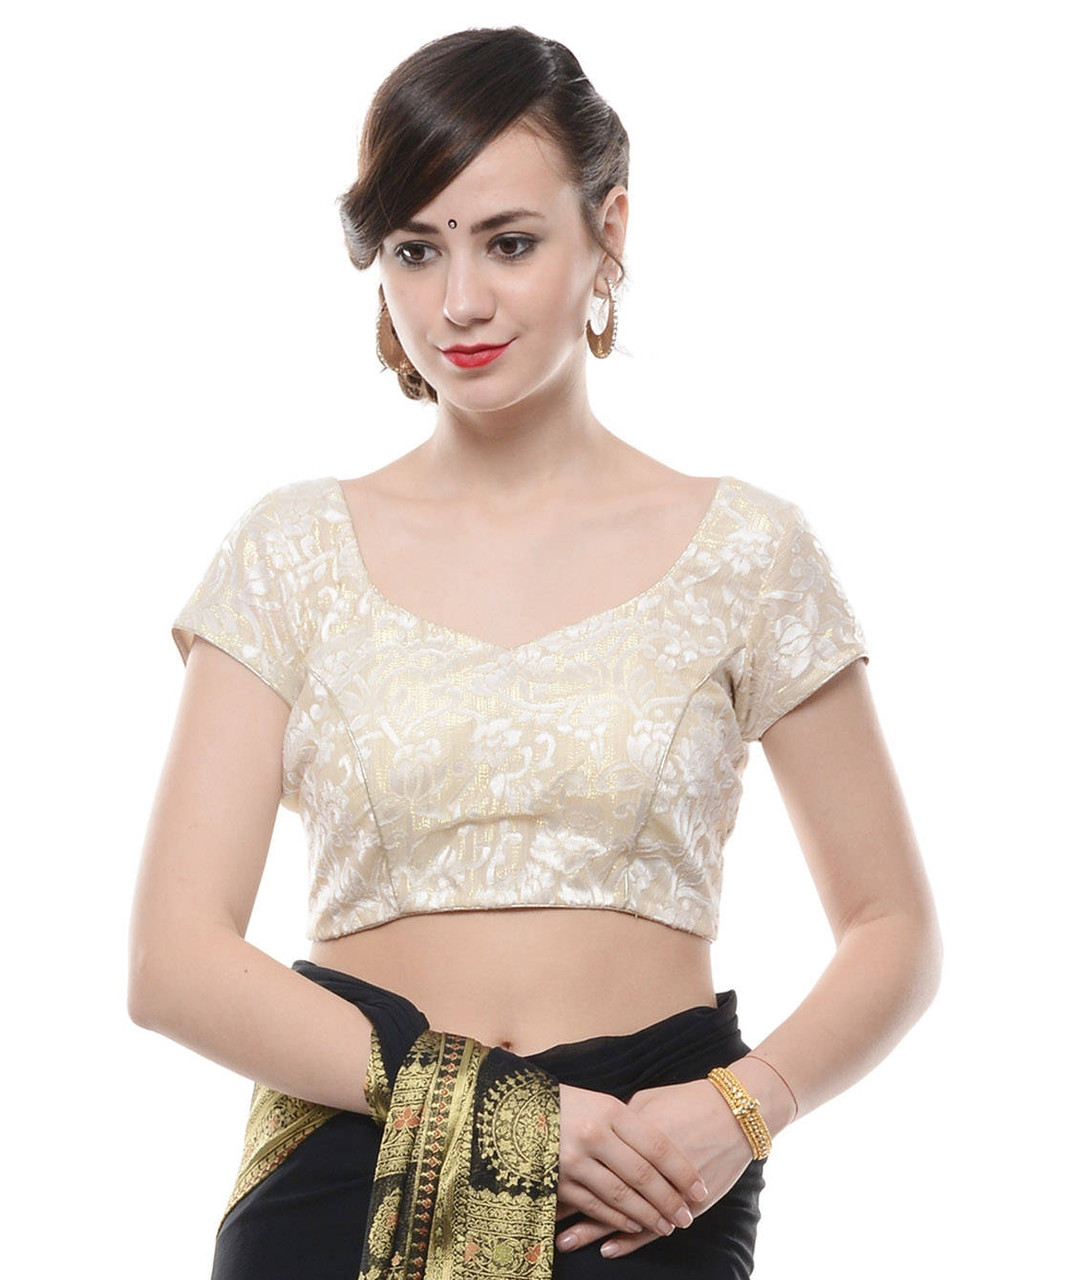 fa3c2cd2a7911d Fashion Blouses - Ivory and Gold Brocade Padded Saree Choli Top for Women  38